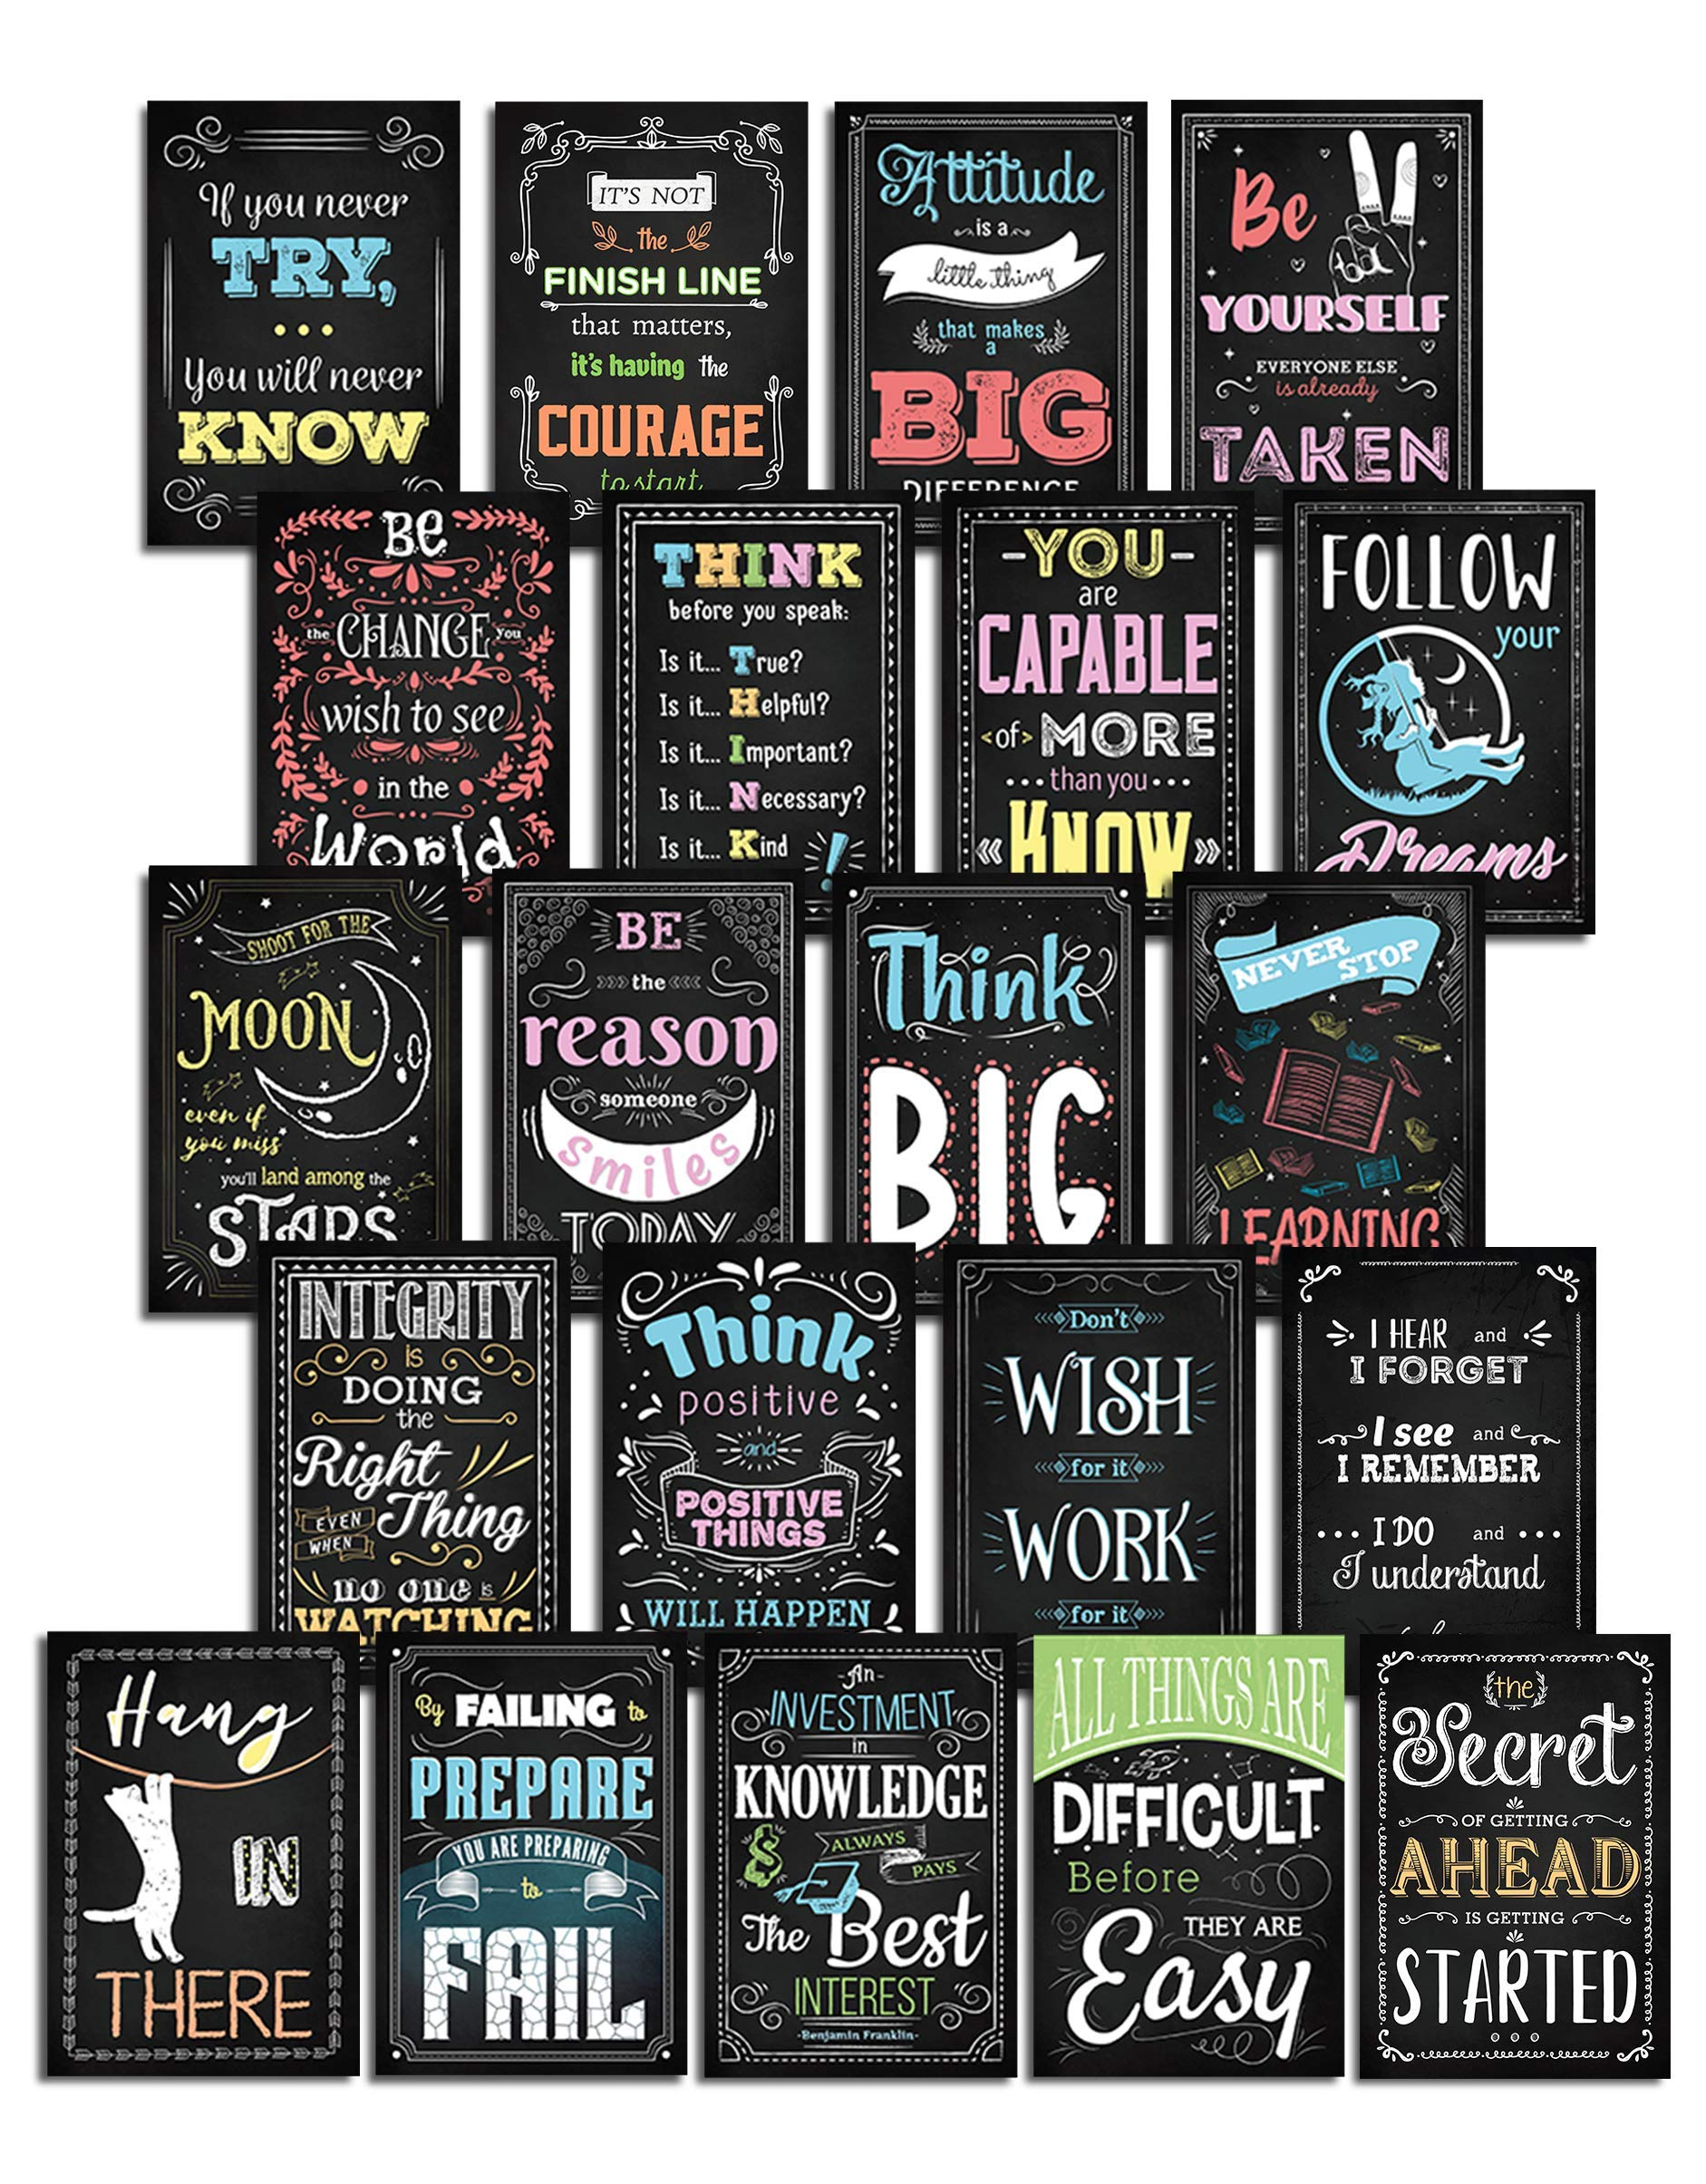 Everyday Educate Inspirational Classroom Wall Decor Posters - Motivational Art and Educational Learning Quotes for Kids and Teens - School, Home, Office or Playroom Board - Set of 21 Teacher Supplies